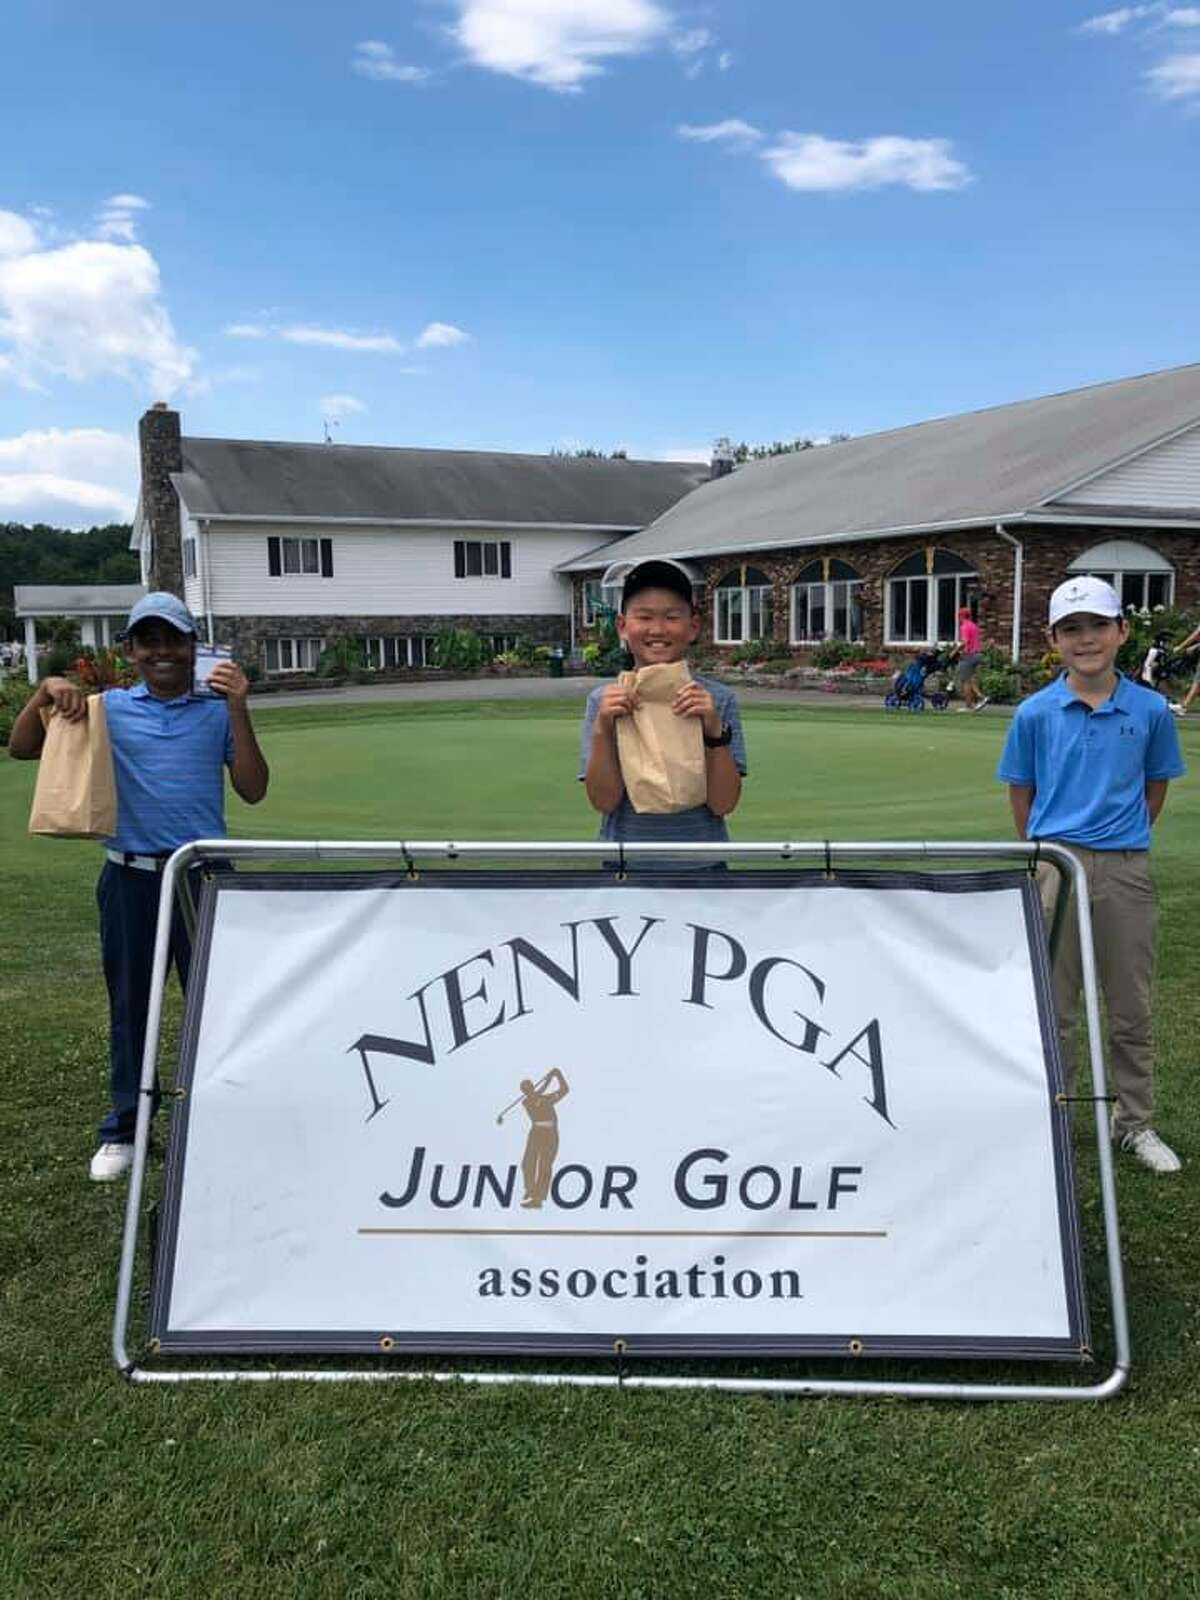 Boys left to Right (Nicky Jadav, age 11, Latham); Joel Wong (age 10, Clifton Park), Adam Judson (age 11, Loudonville, NY) at the NENYPGA Junior Golf tournament.